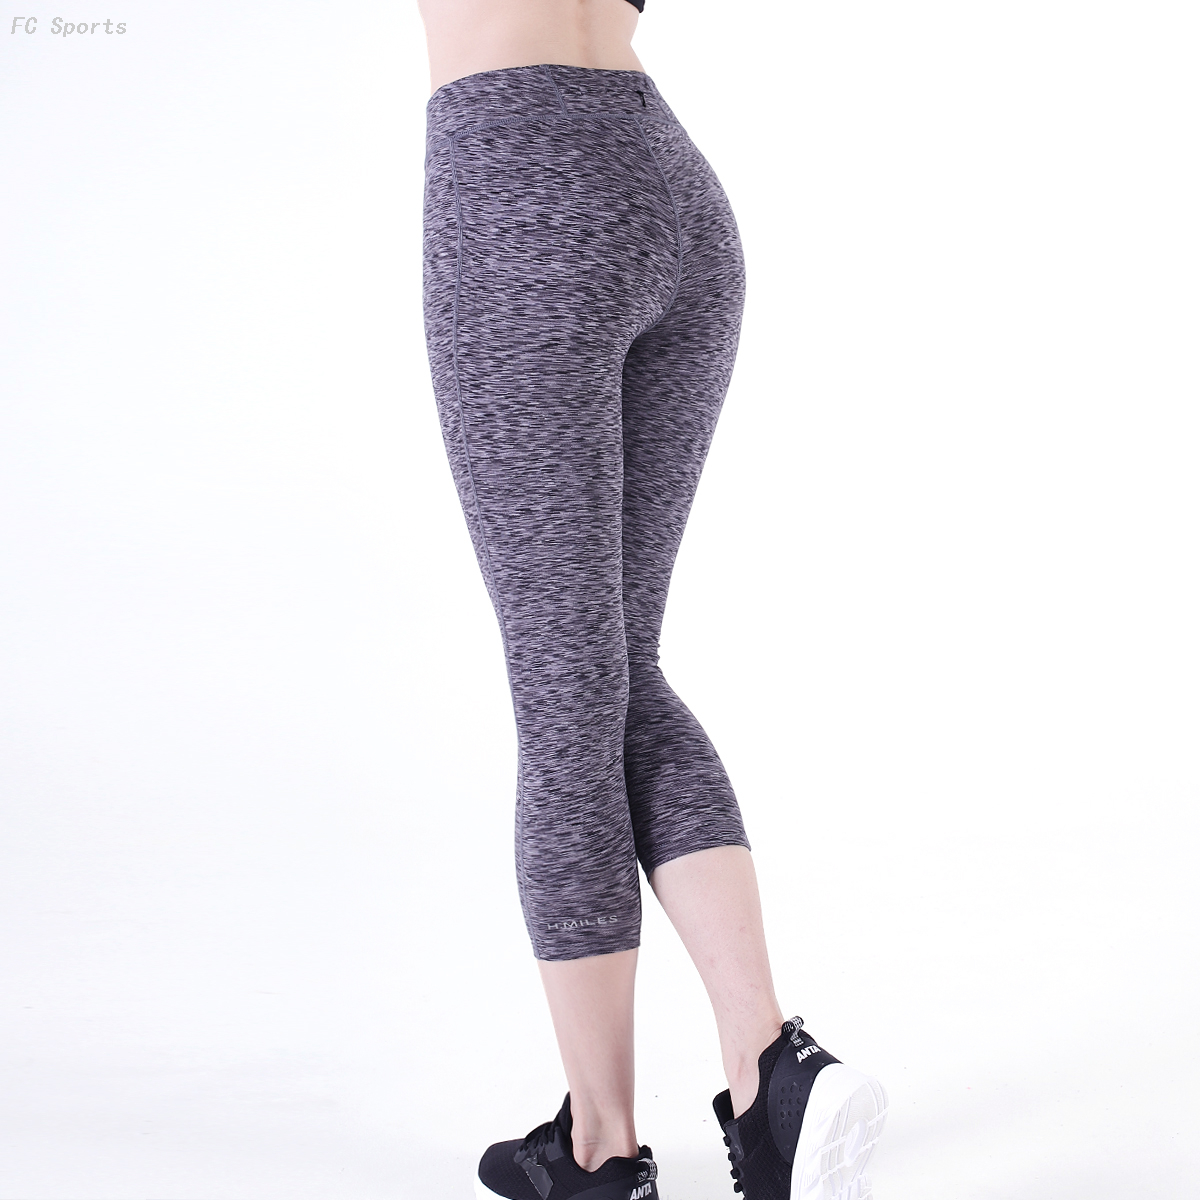 FC Sports Legging Yoga Pants Casual Stretch Breathable Fitness Clothes Active Wear for Women